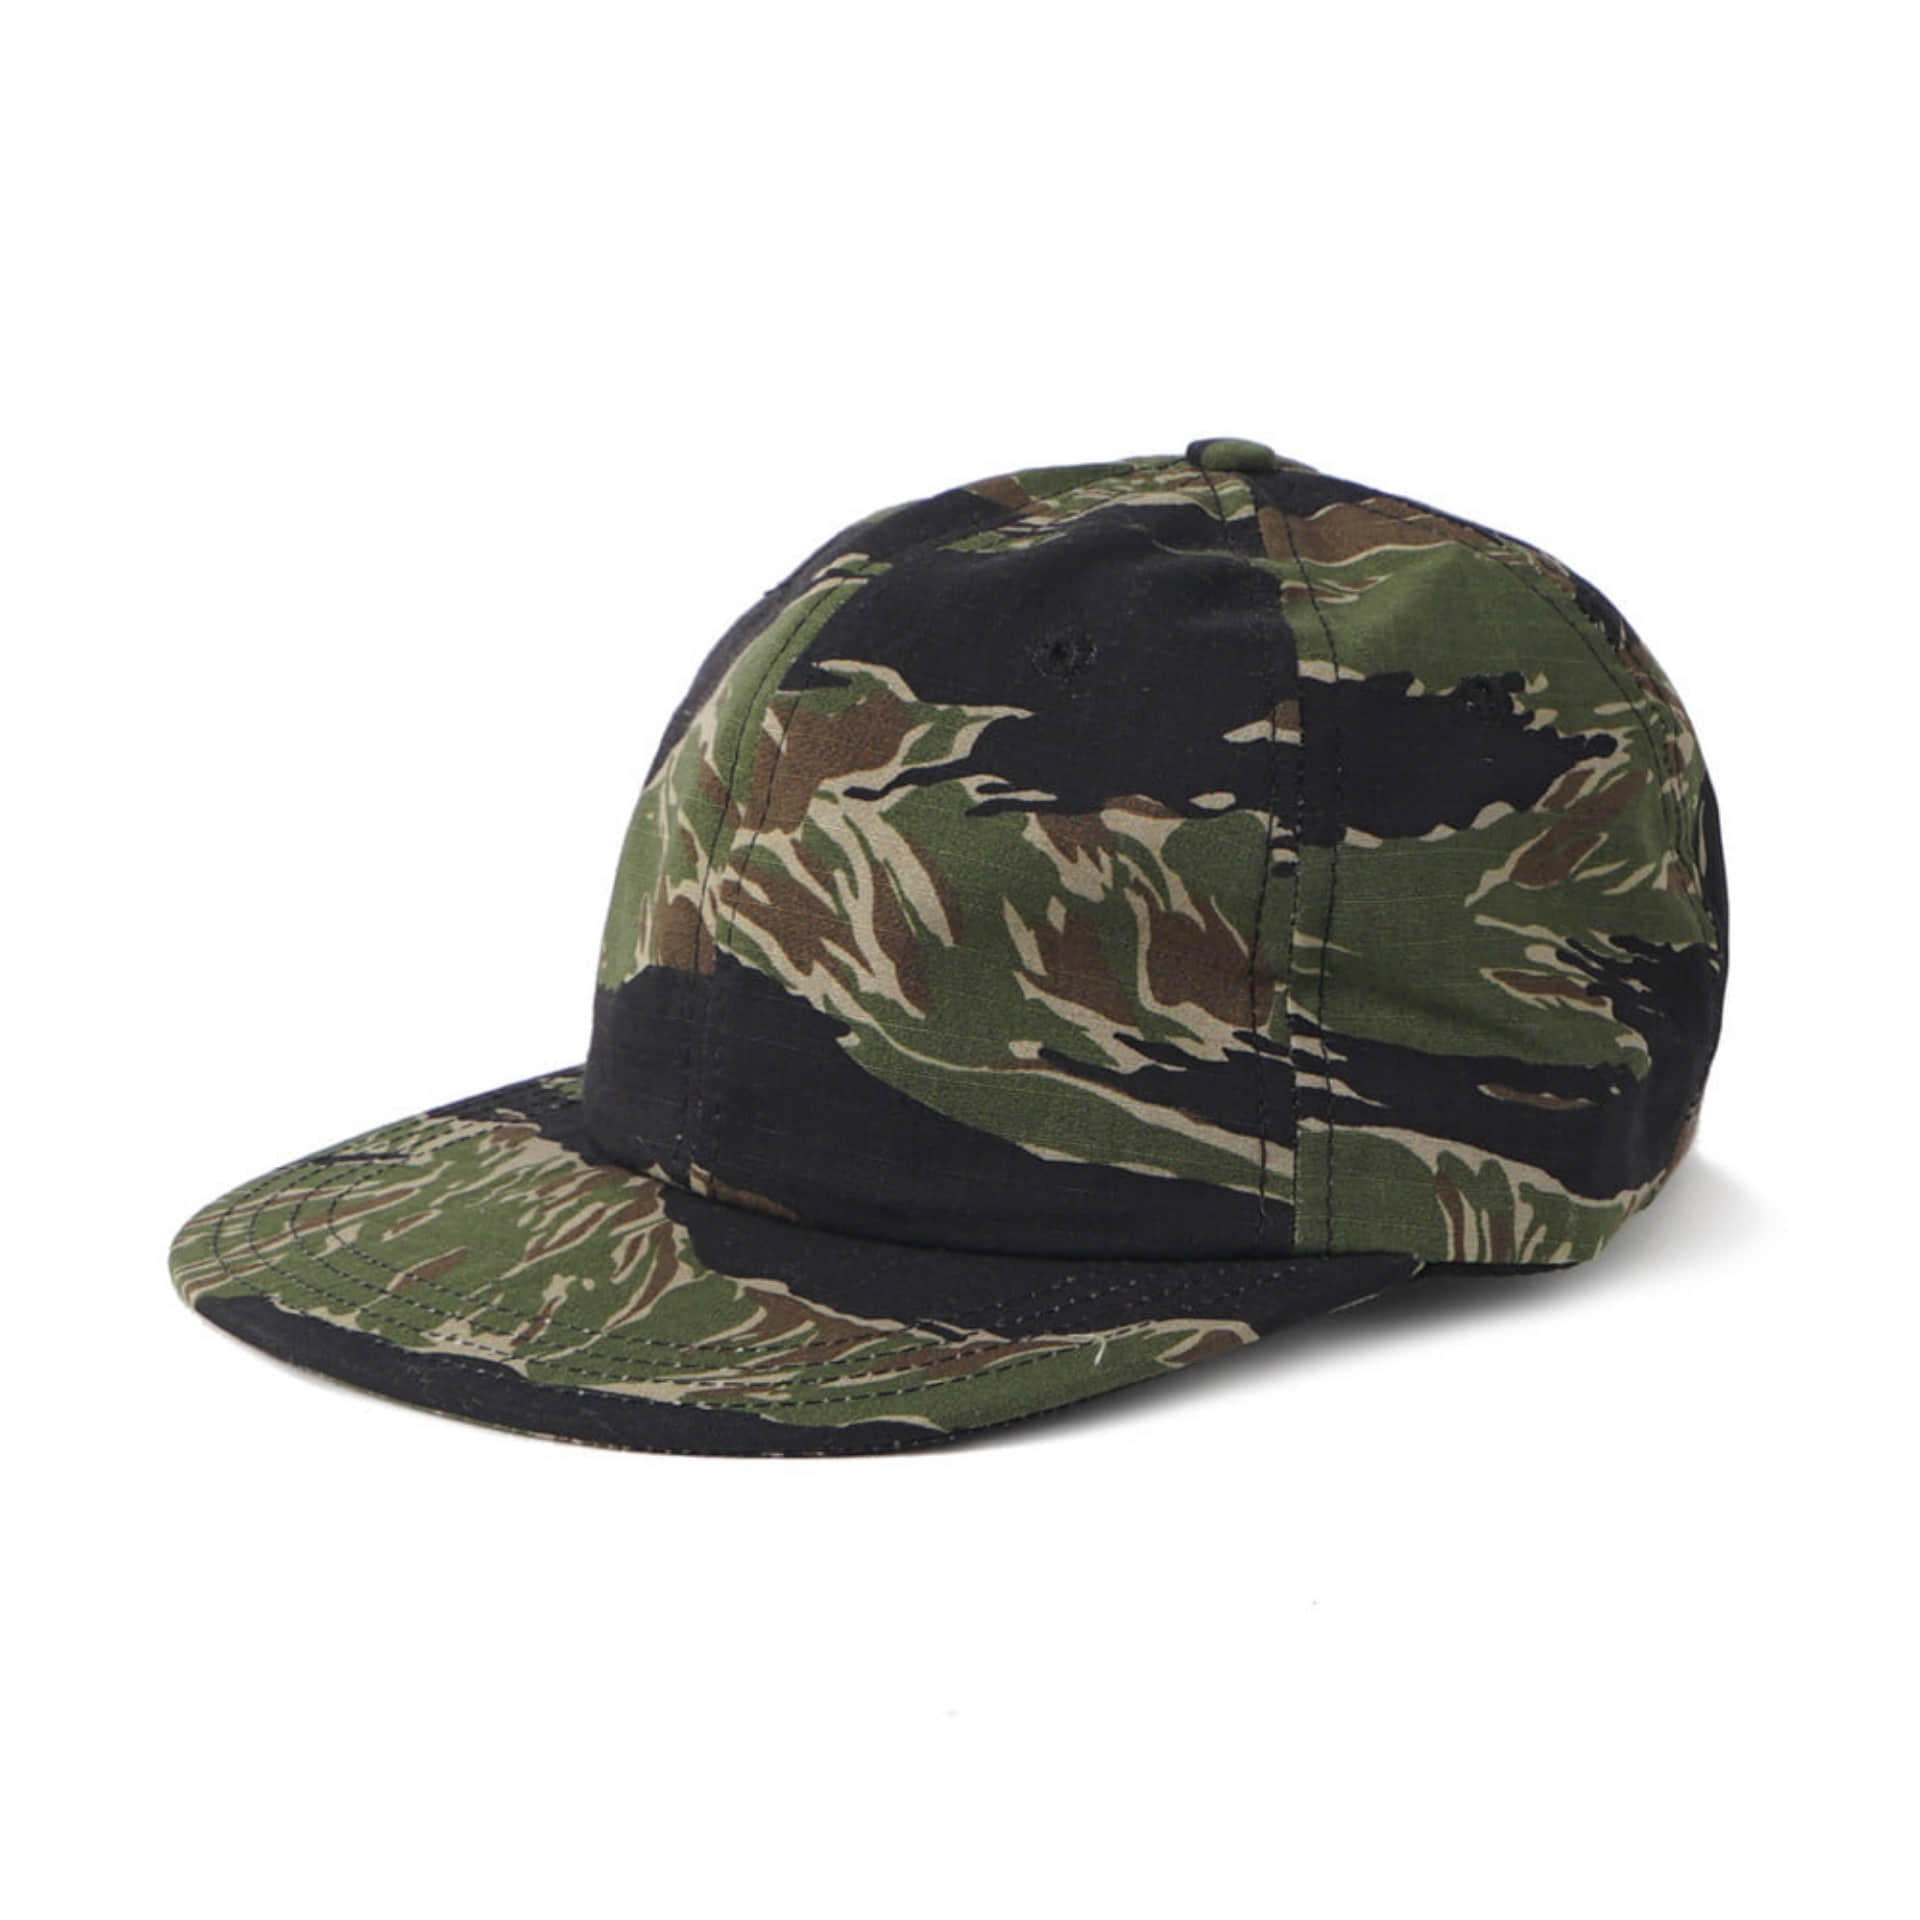 Ball Cap Green Tigerstripe Ripstop(CAMO)